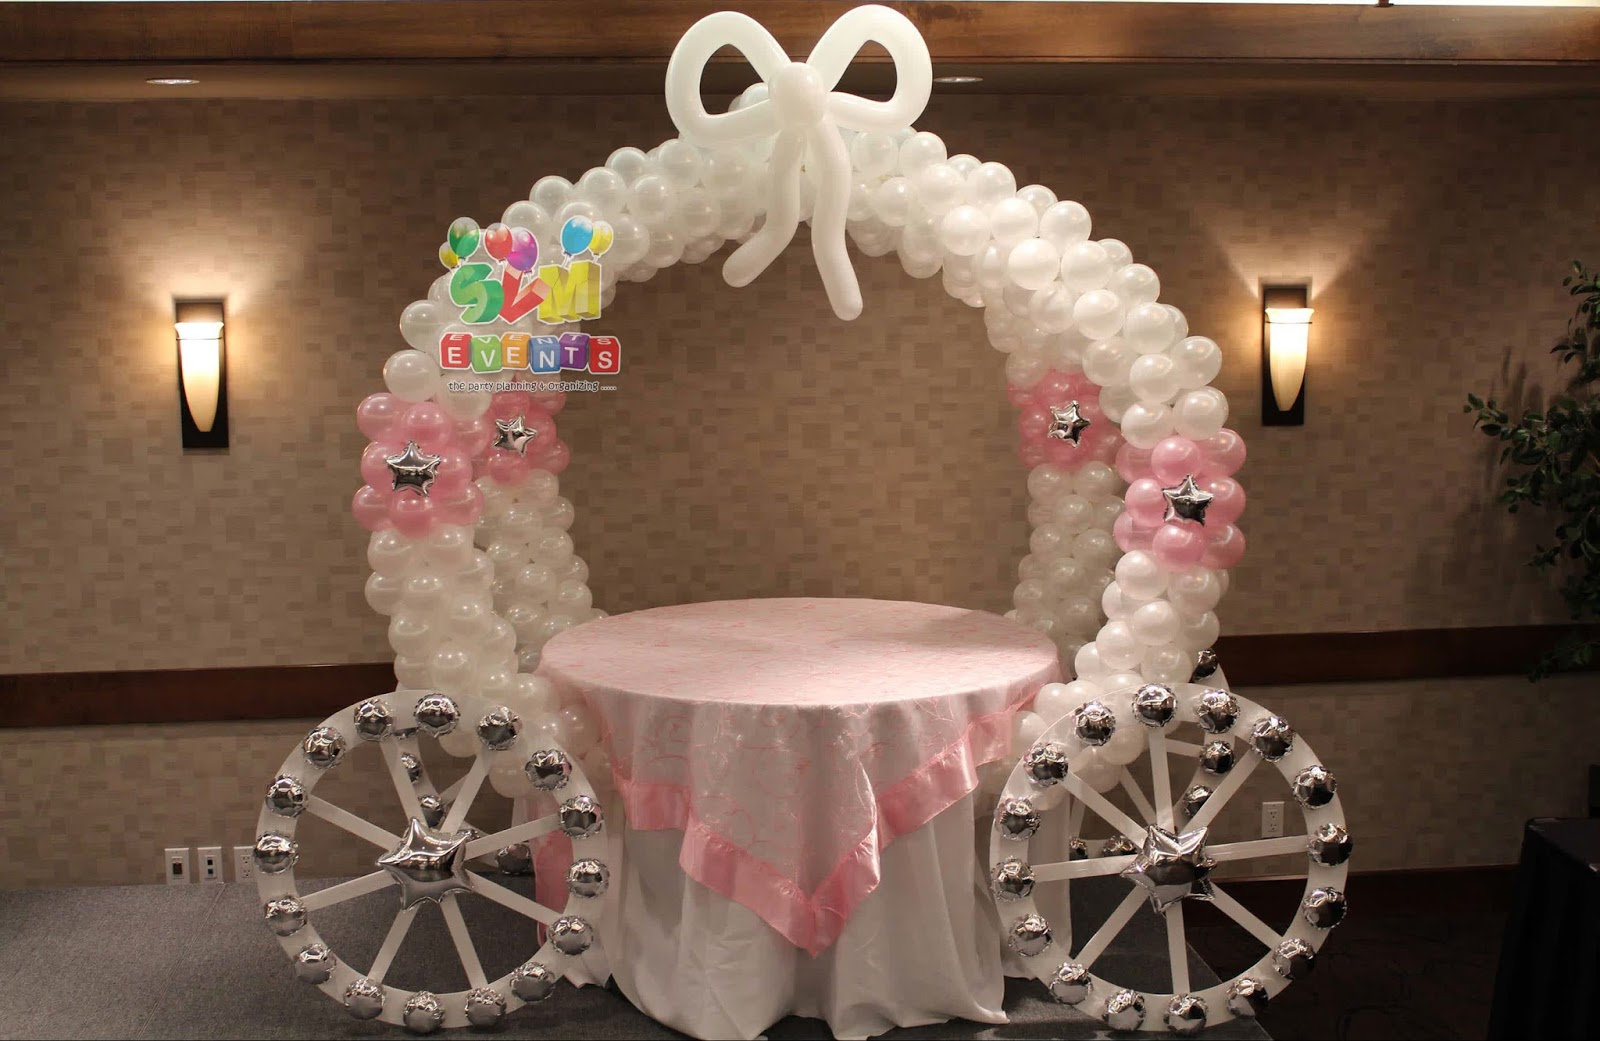 Svm events chariot theme for kids 1st birthday party and for Balloon decoration for kids party